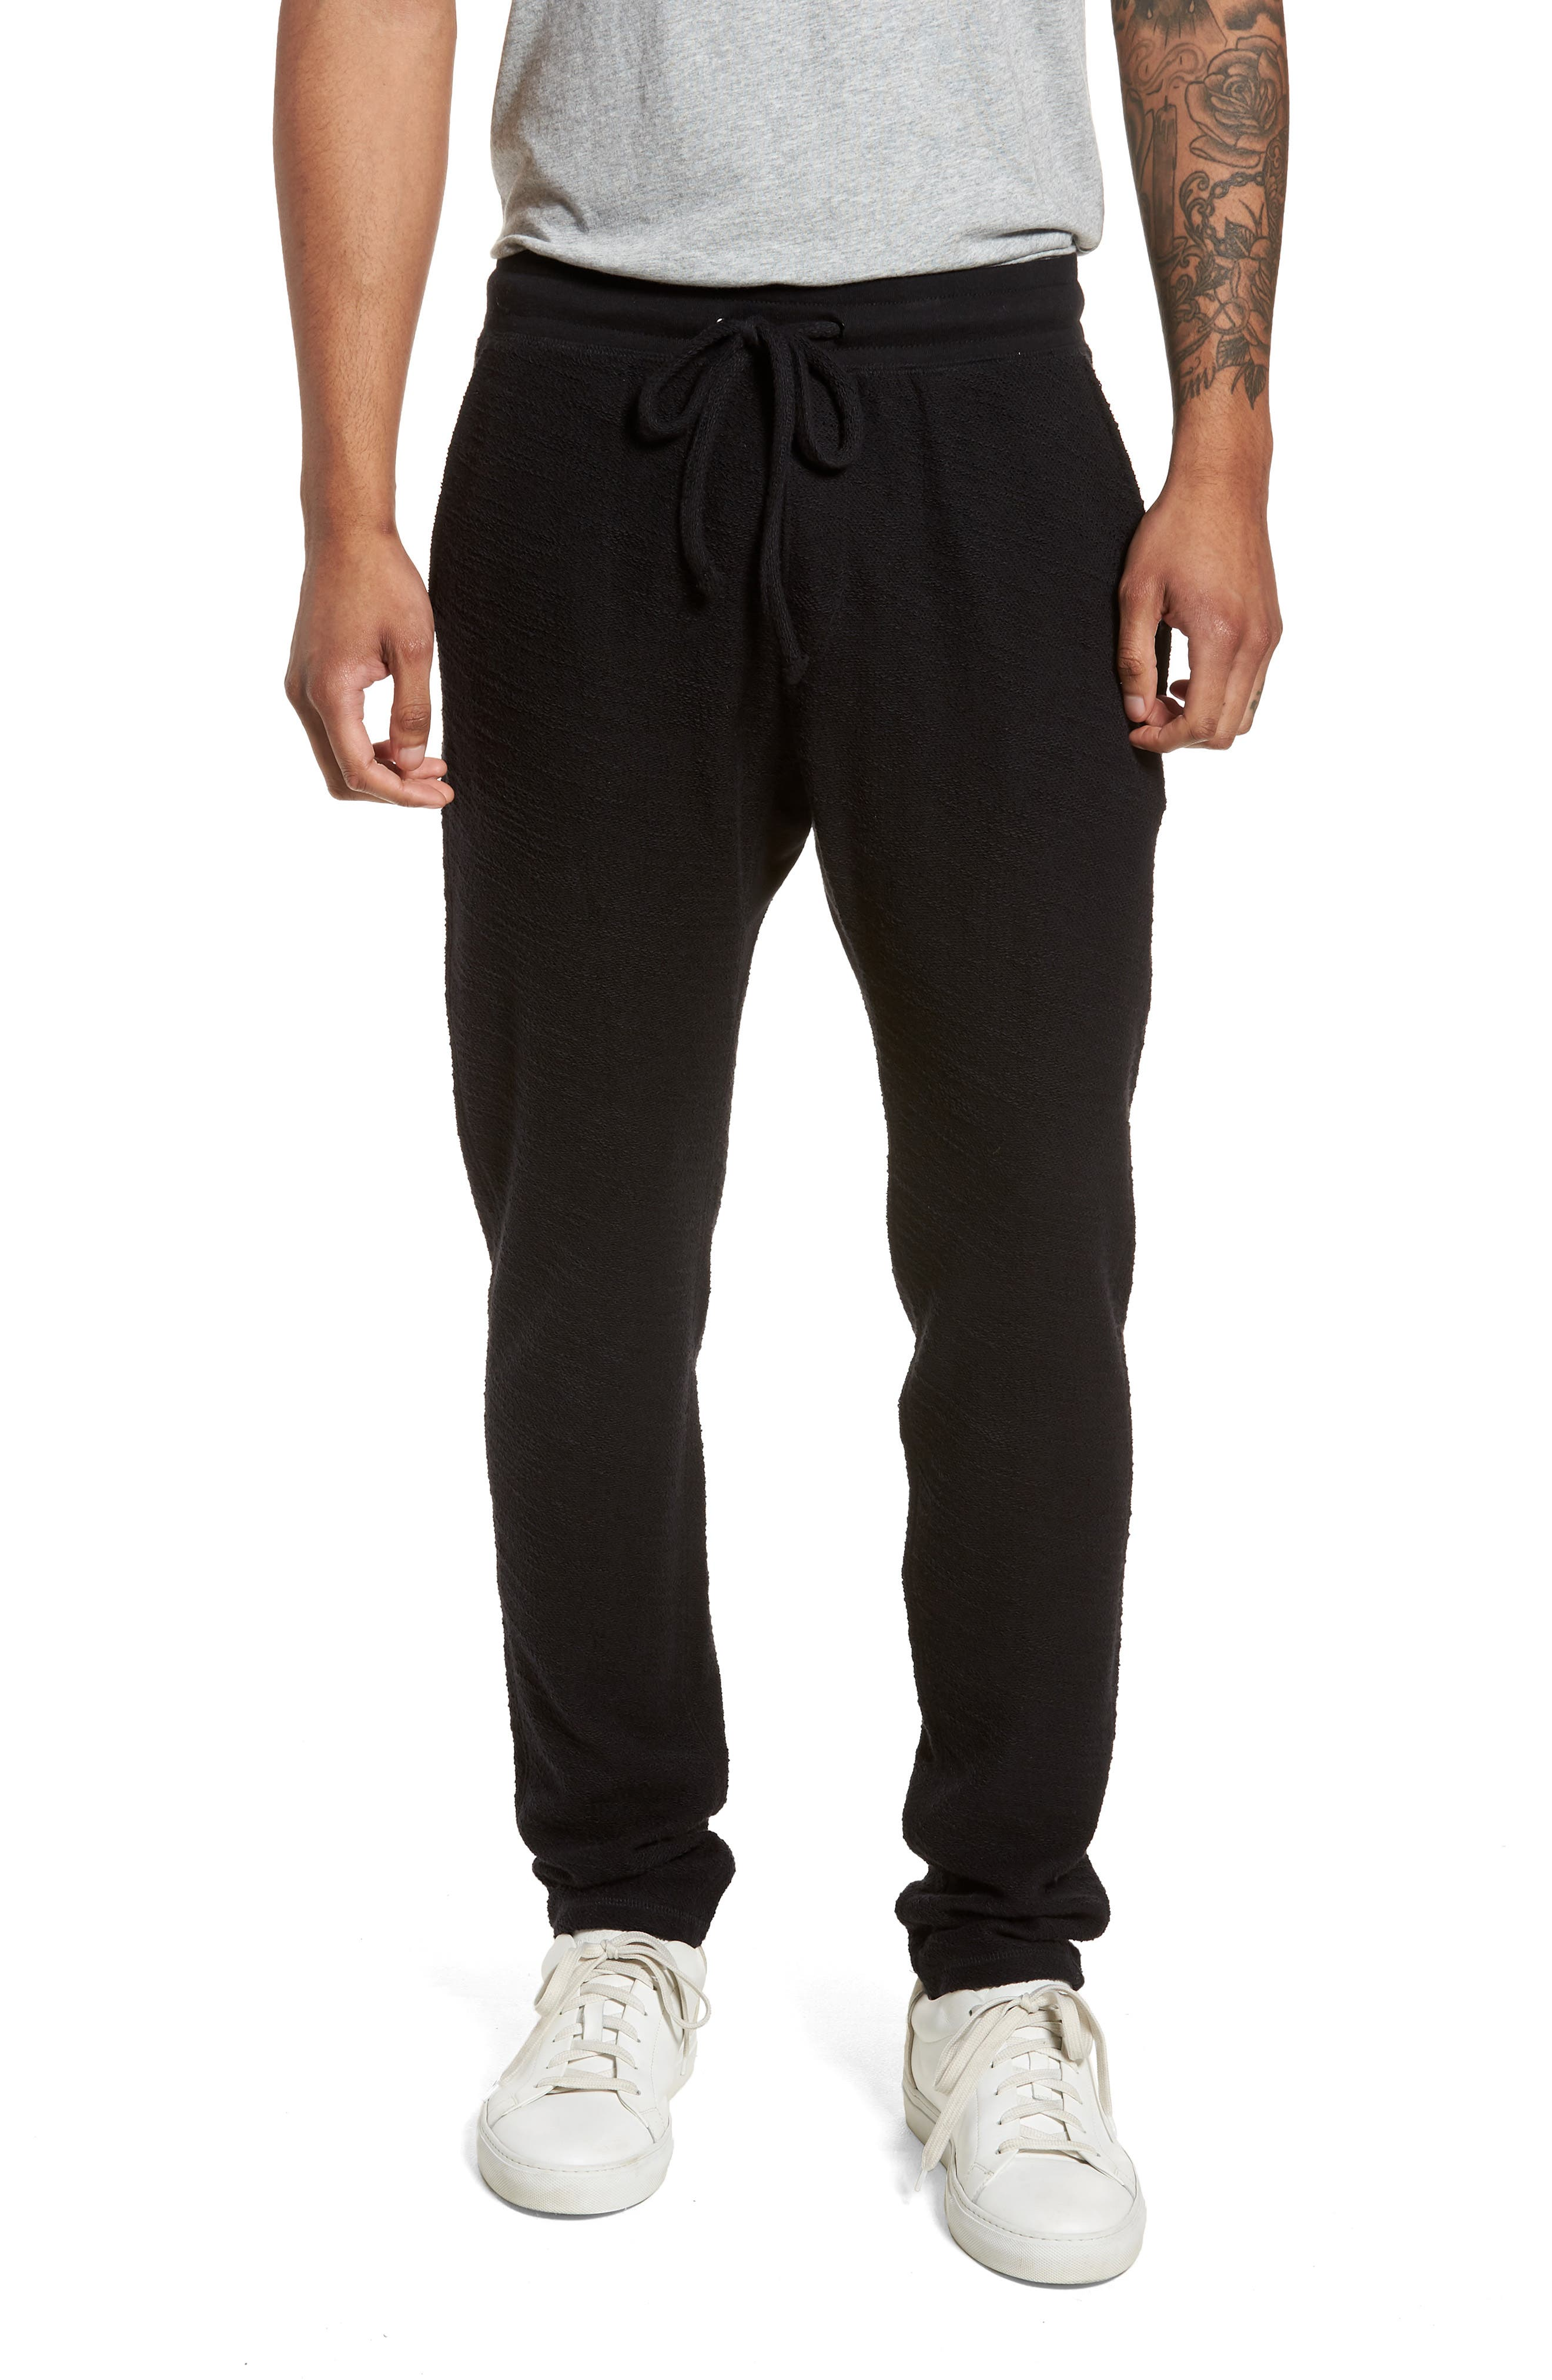 Main Image - Goodlife Terry Cloth Cotton Blend Pants